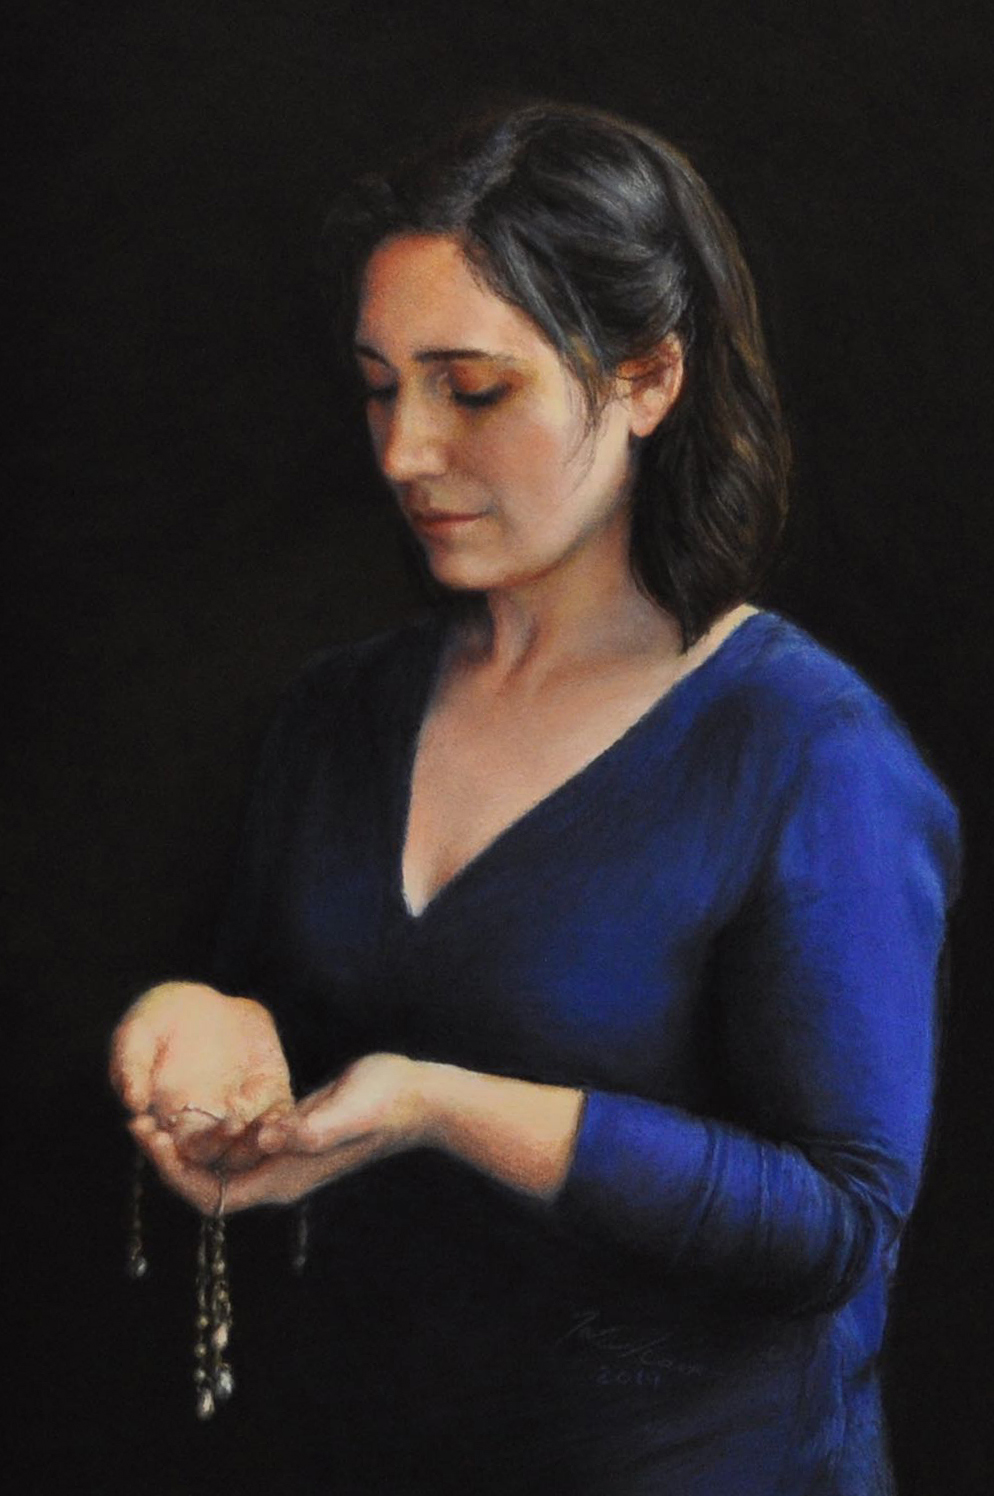 Sad woman looking down at her cupped hands where valuables flow down through her fingers leaving emptiness